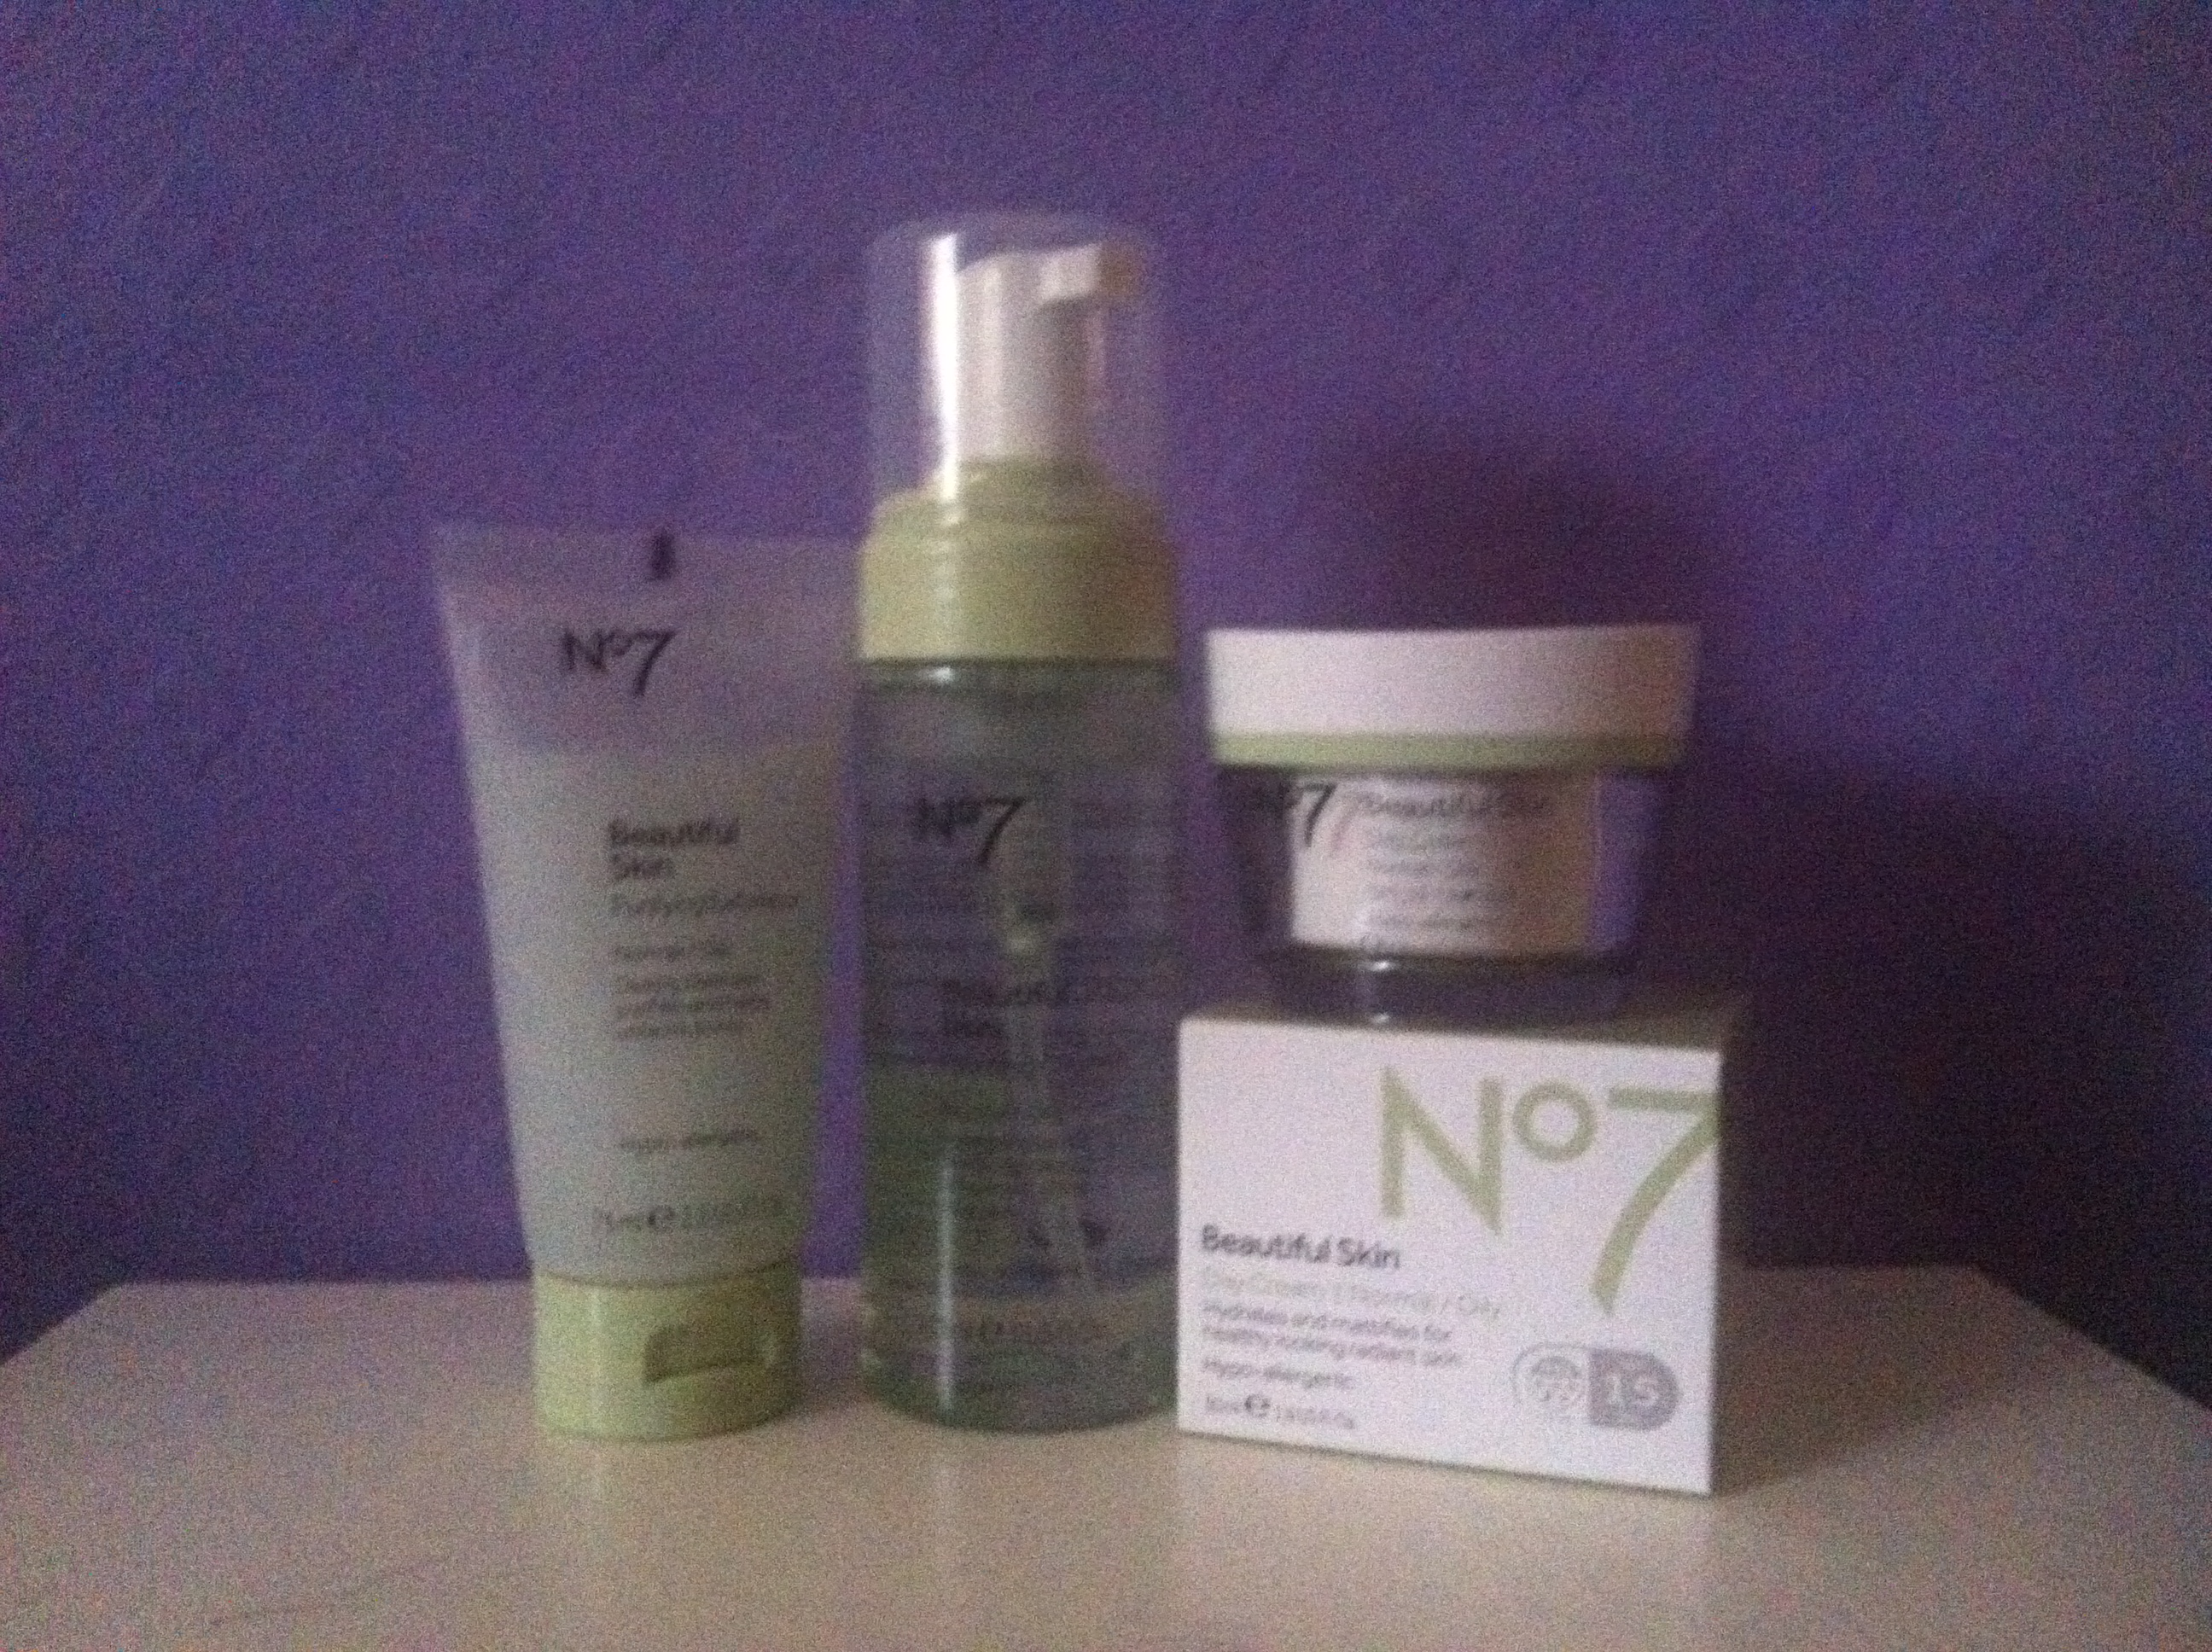 Boots no 7 products reviews